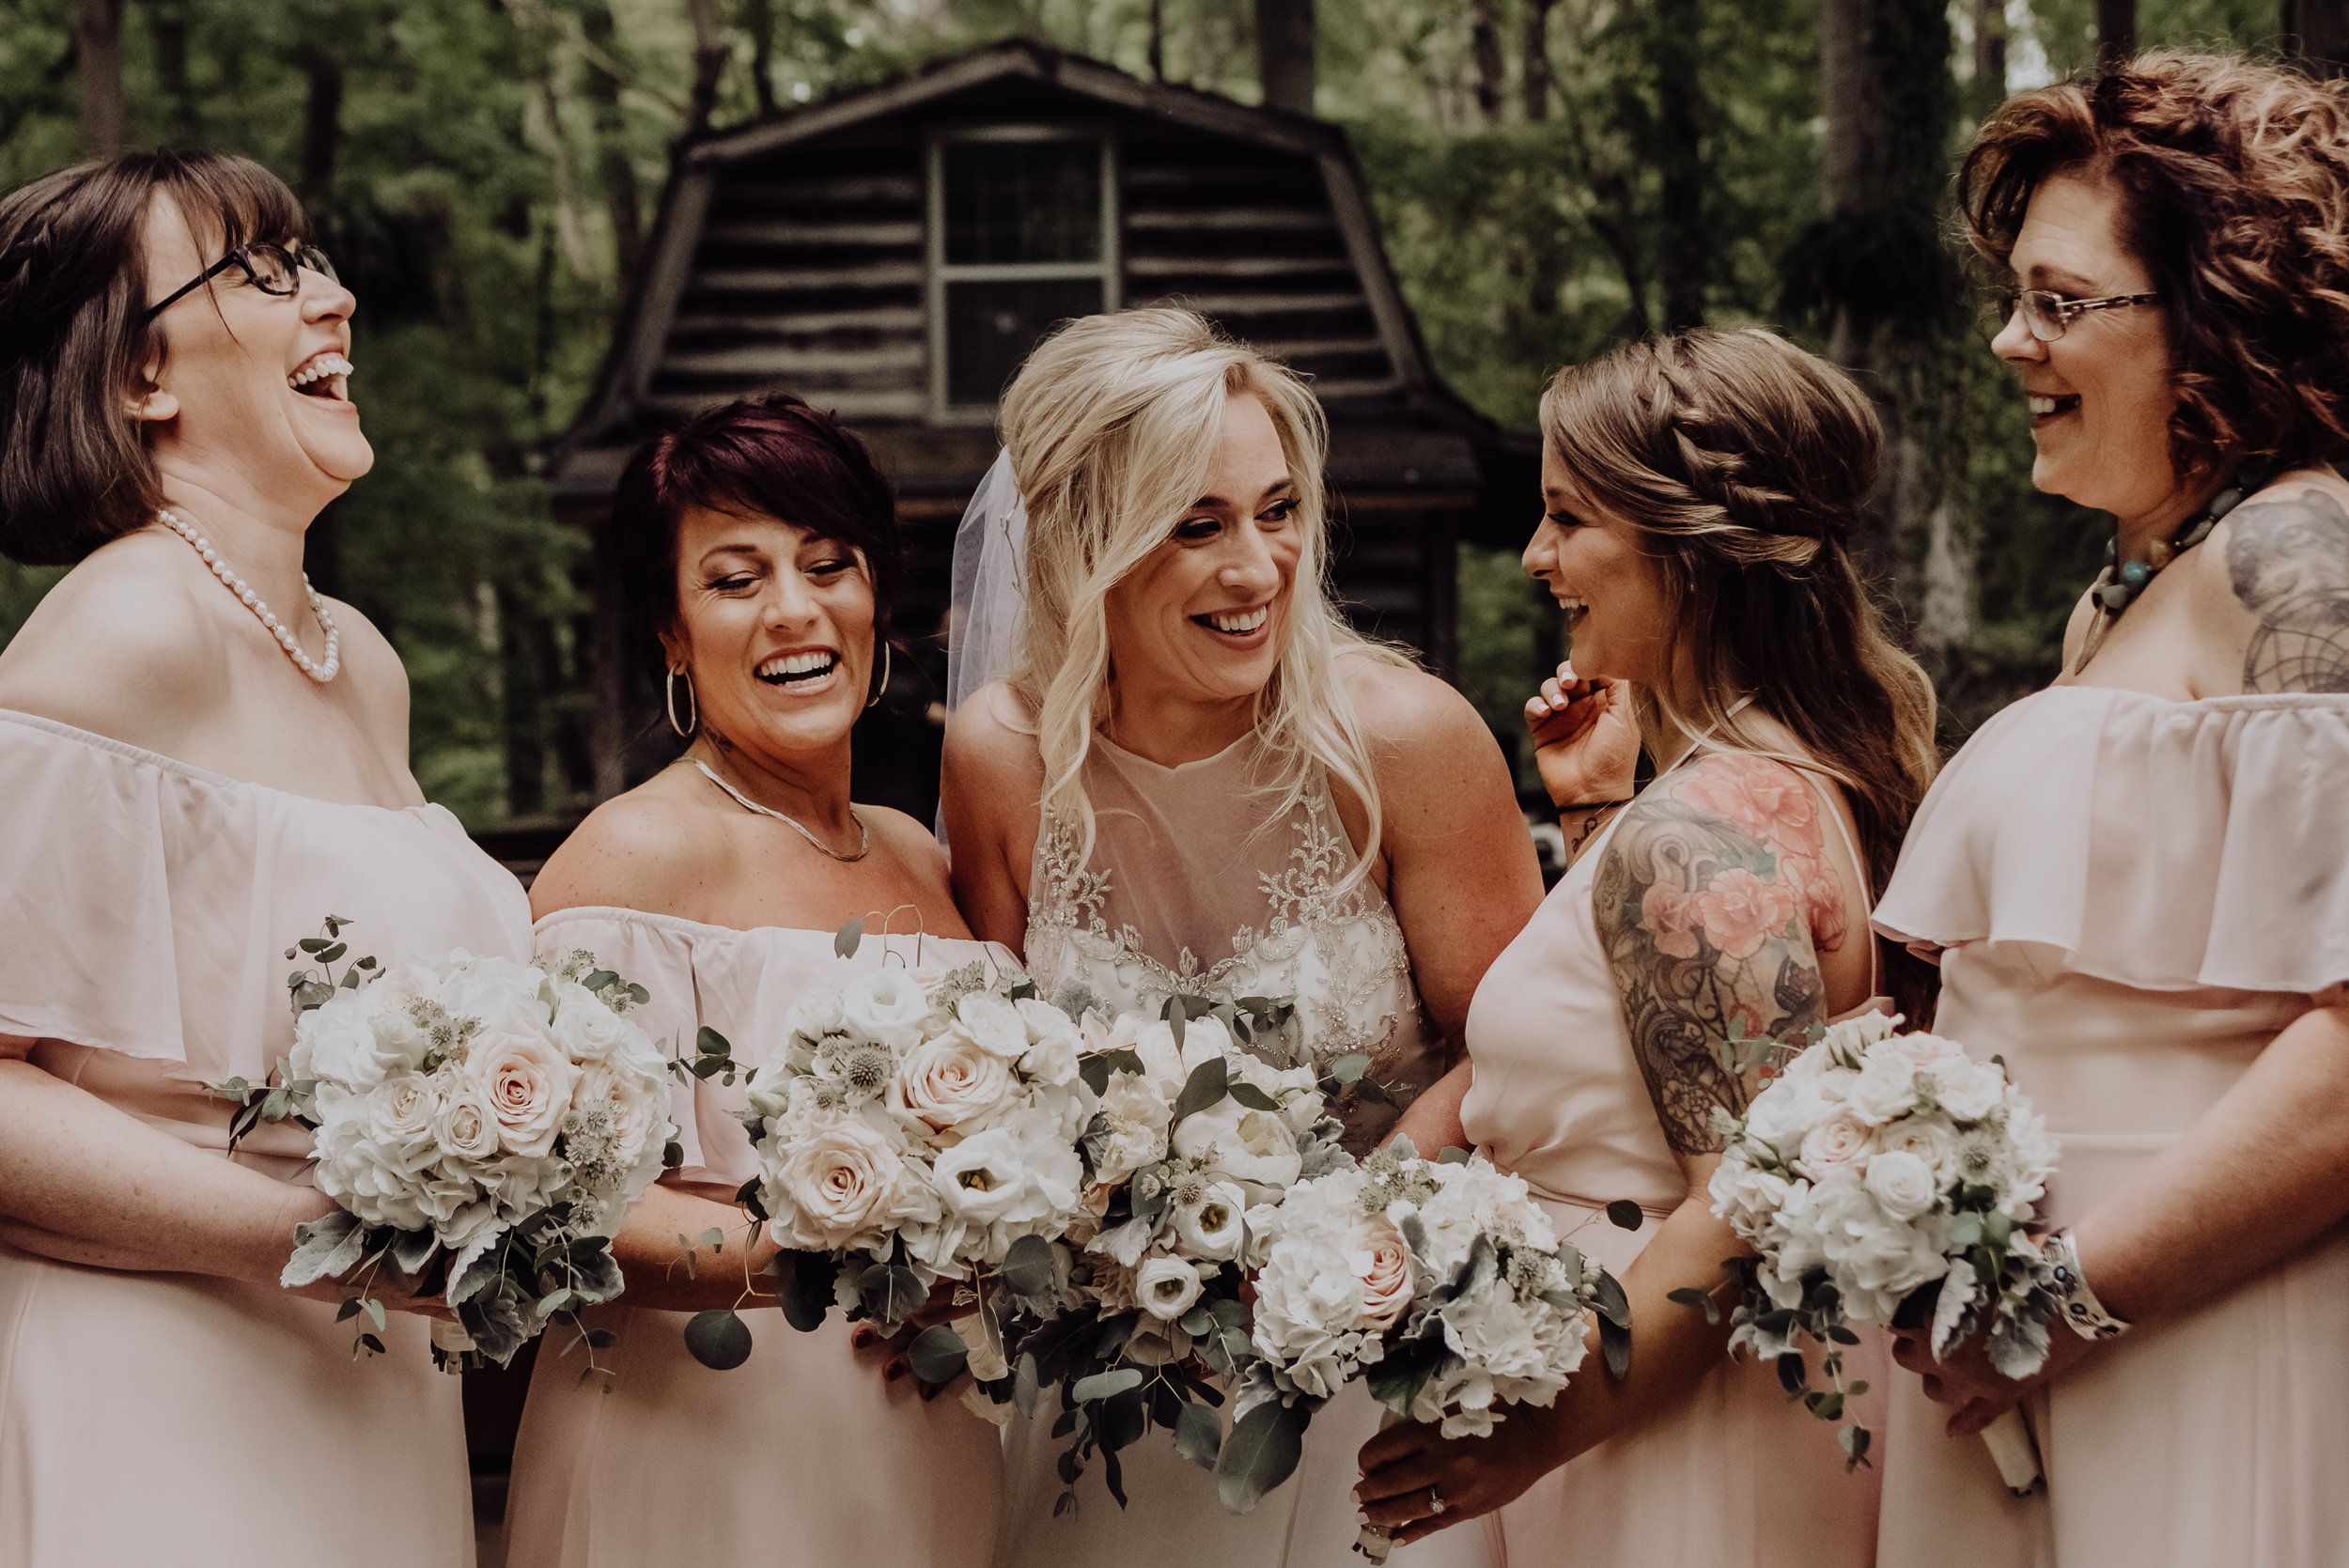 amanda and mike tennessee wedding at tanglewood house by wilde company-20.jpg